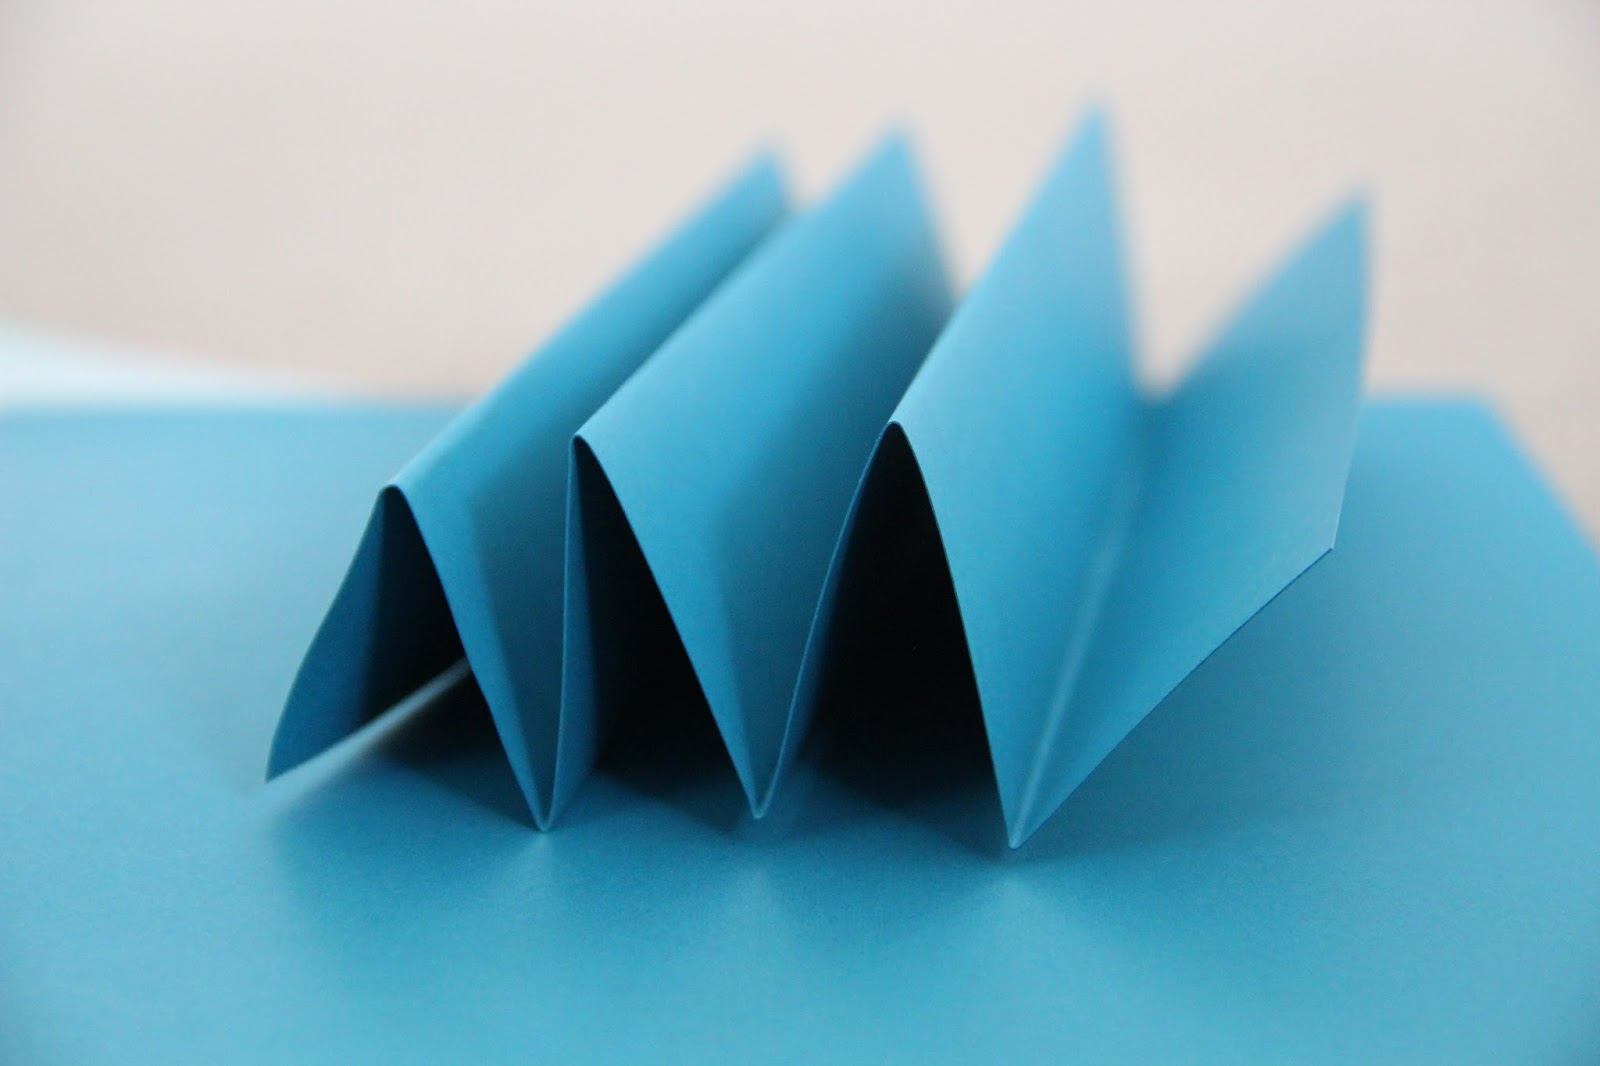 How to make rosettes out of paper - All You Ll Need Is A A Stack Of Card Stock Paper Hot Glue And Scissors I Found The Blue And Pink Card Stock At Michaels And To Make The Number Of